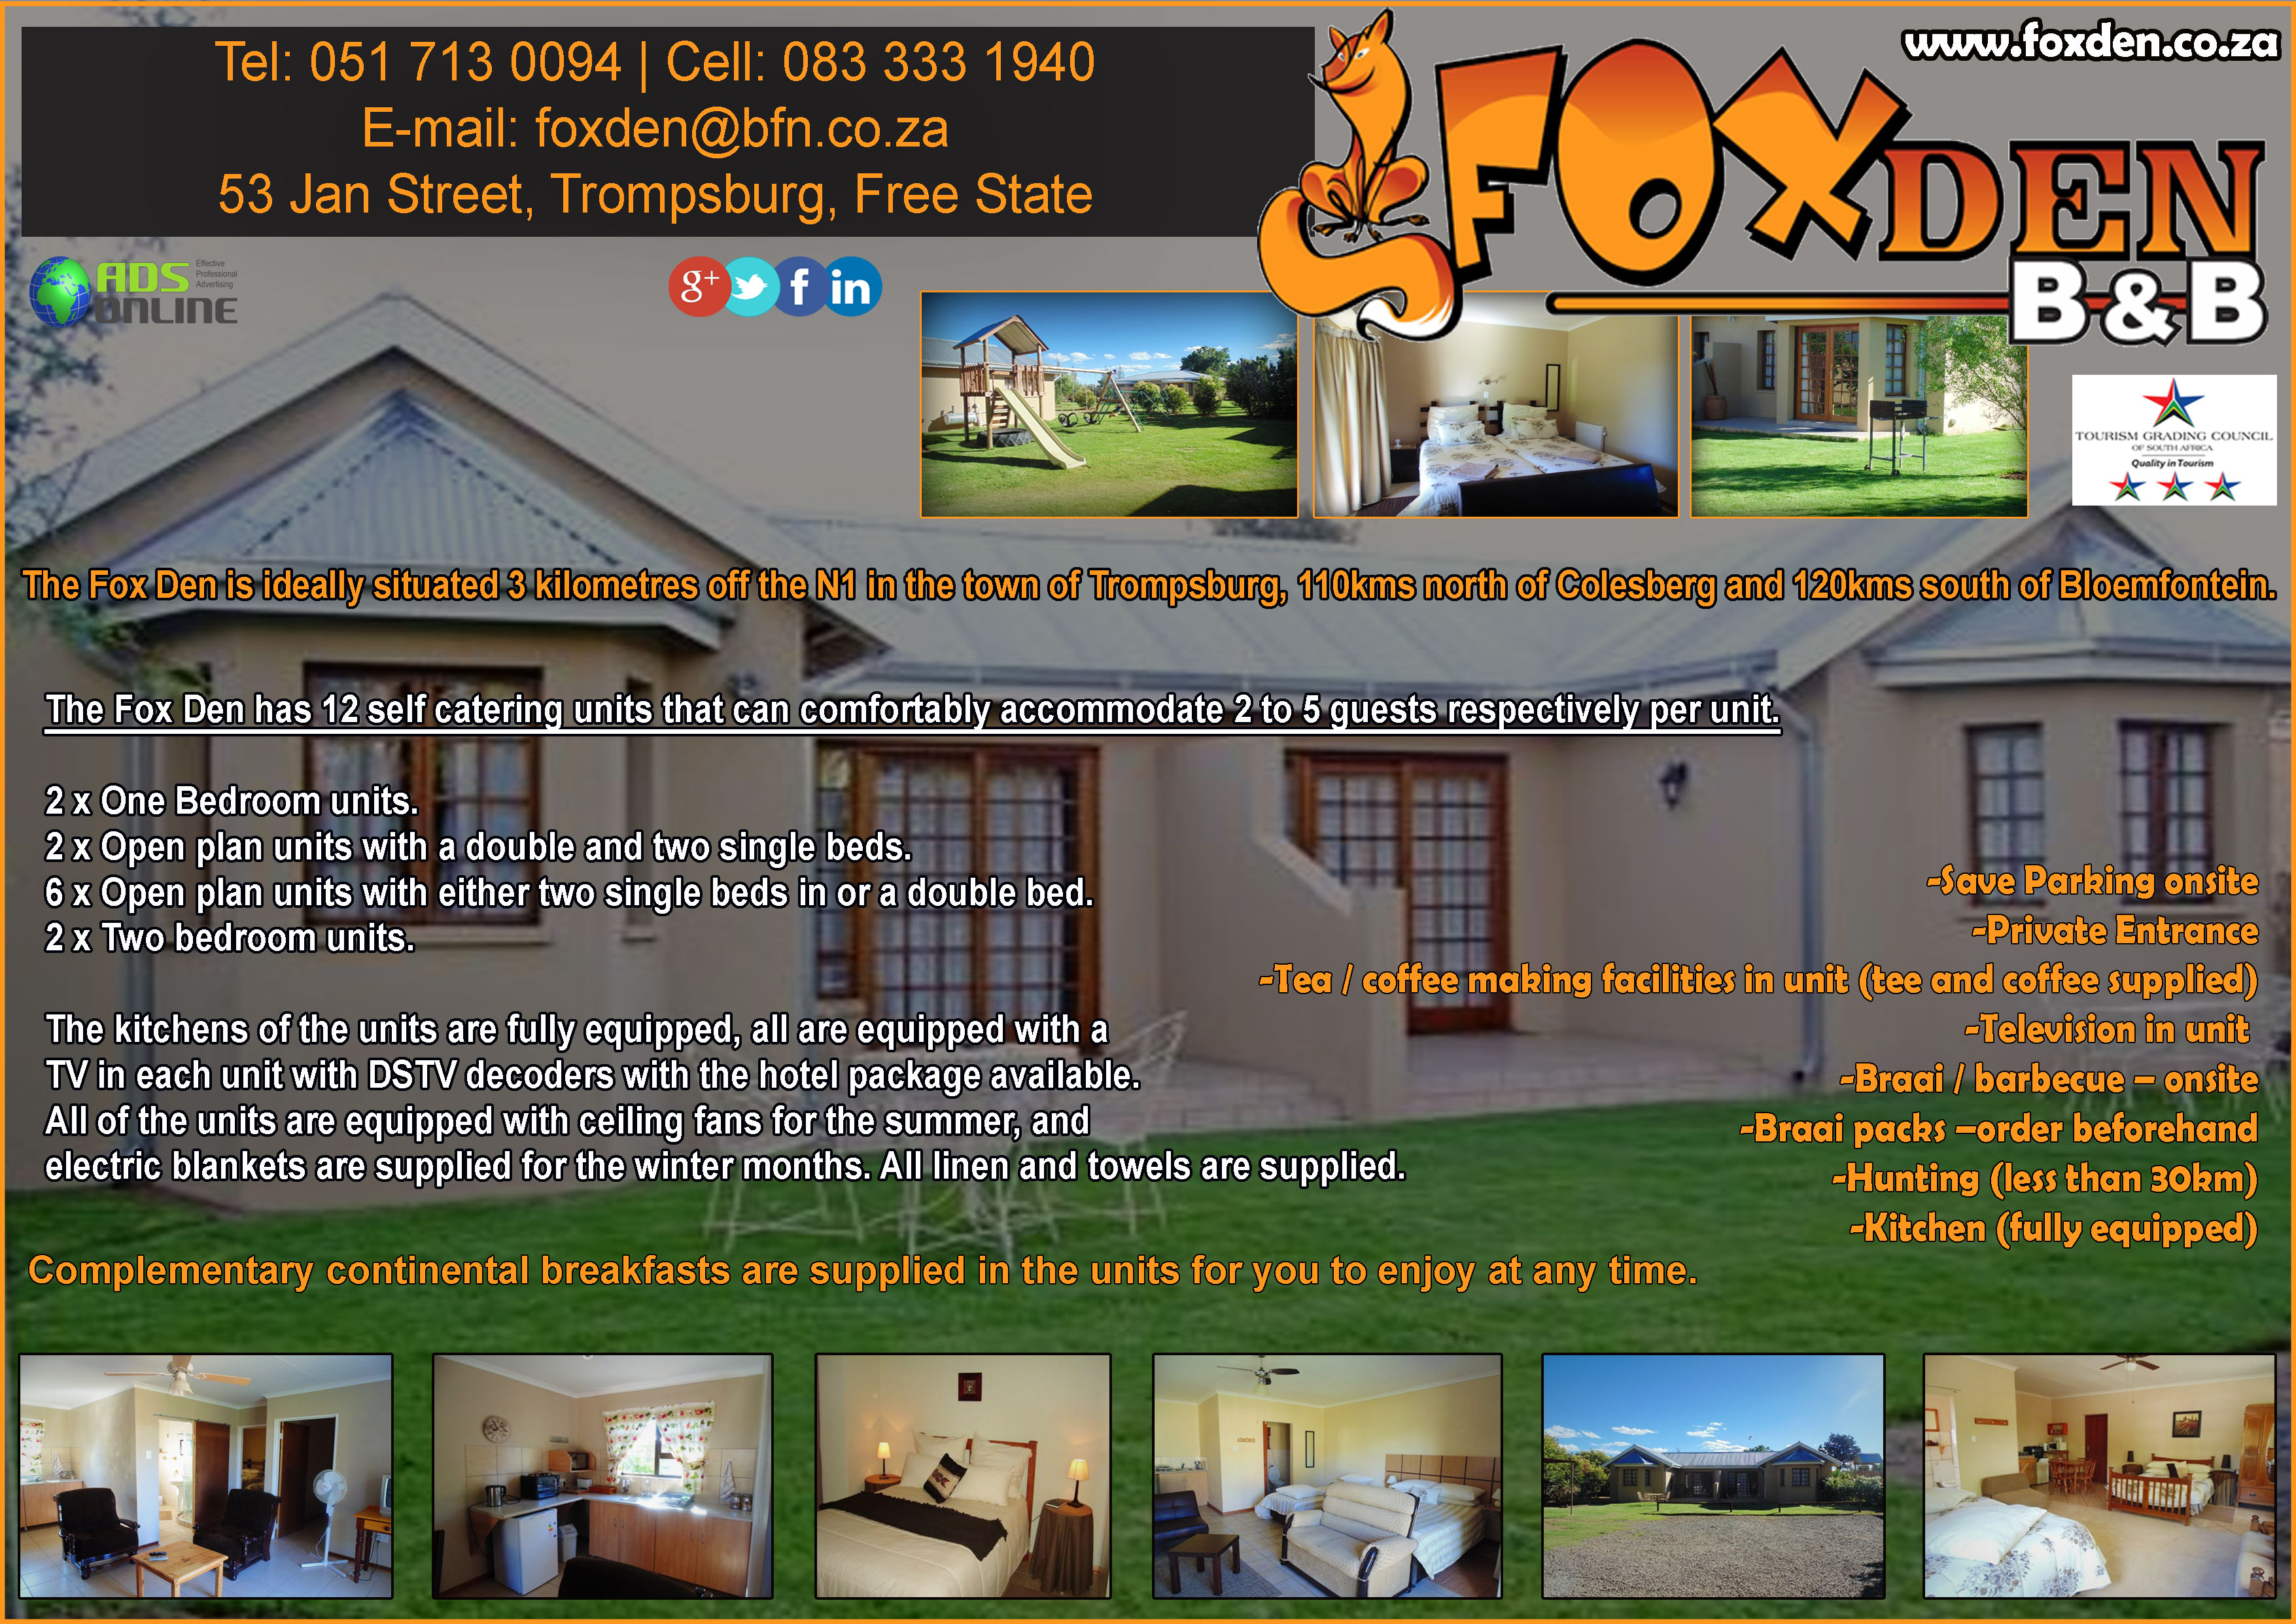 Fox Den Bed and Breakfast Guest House | Trompsburg, Free State